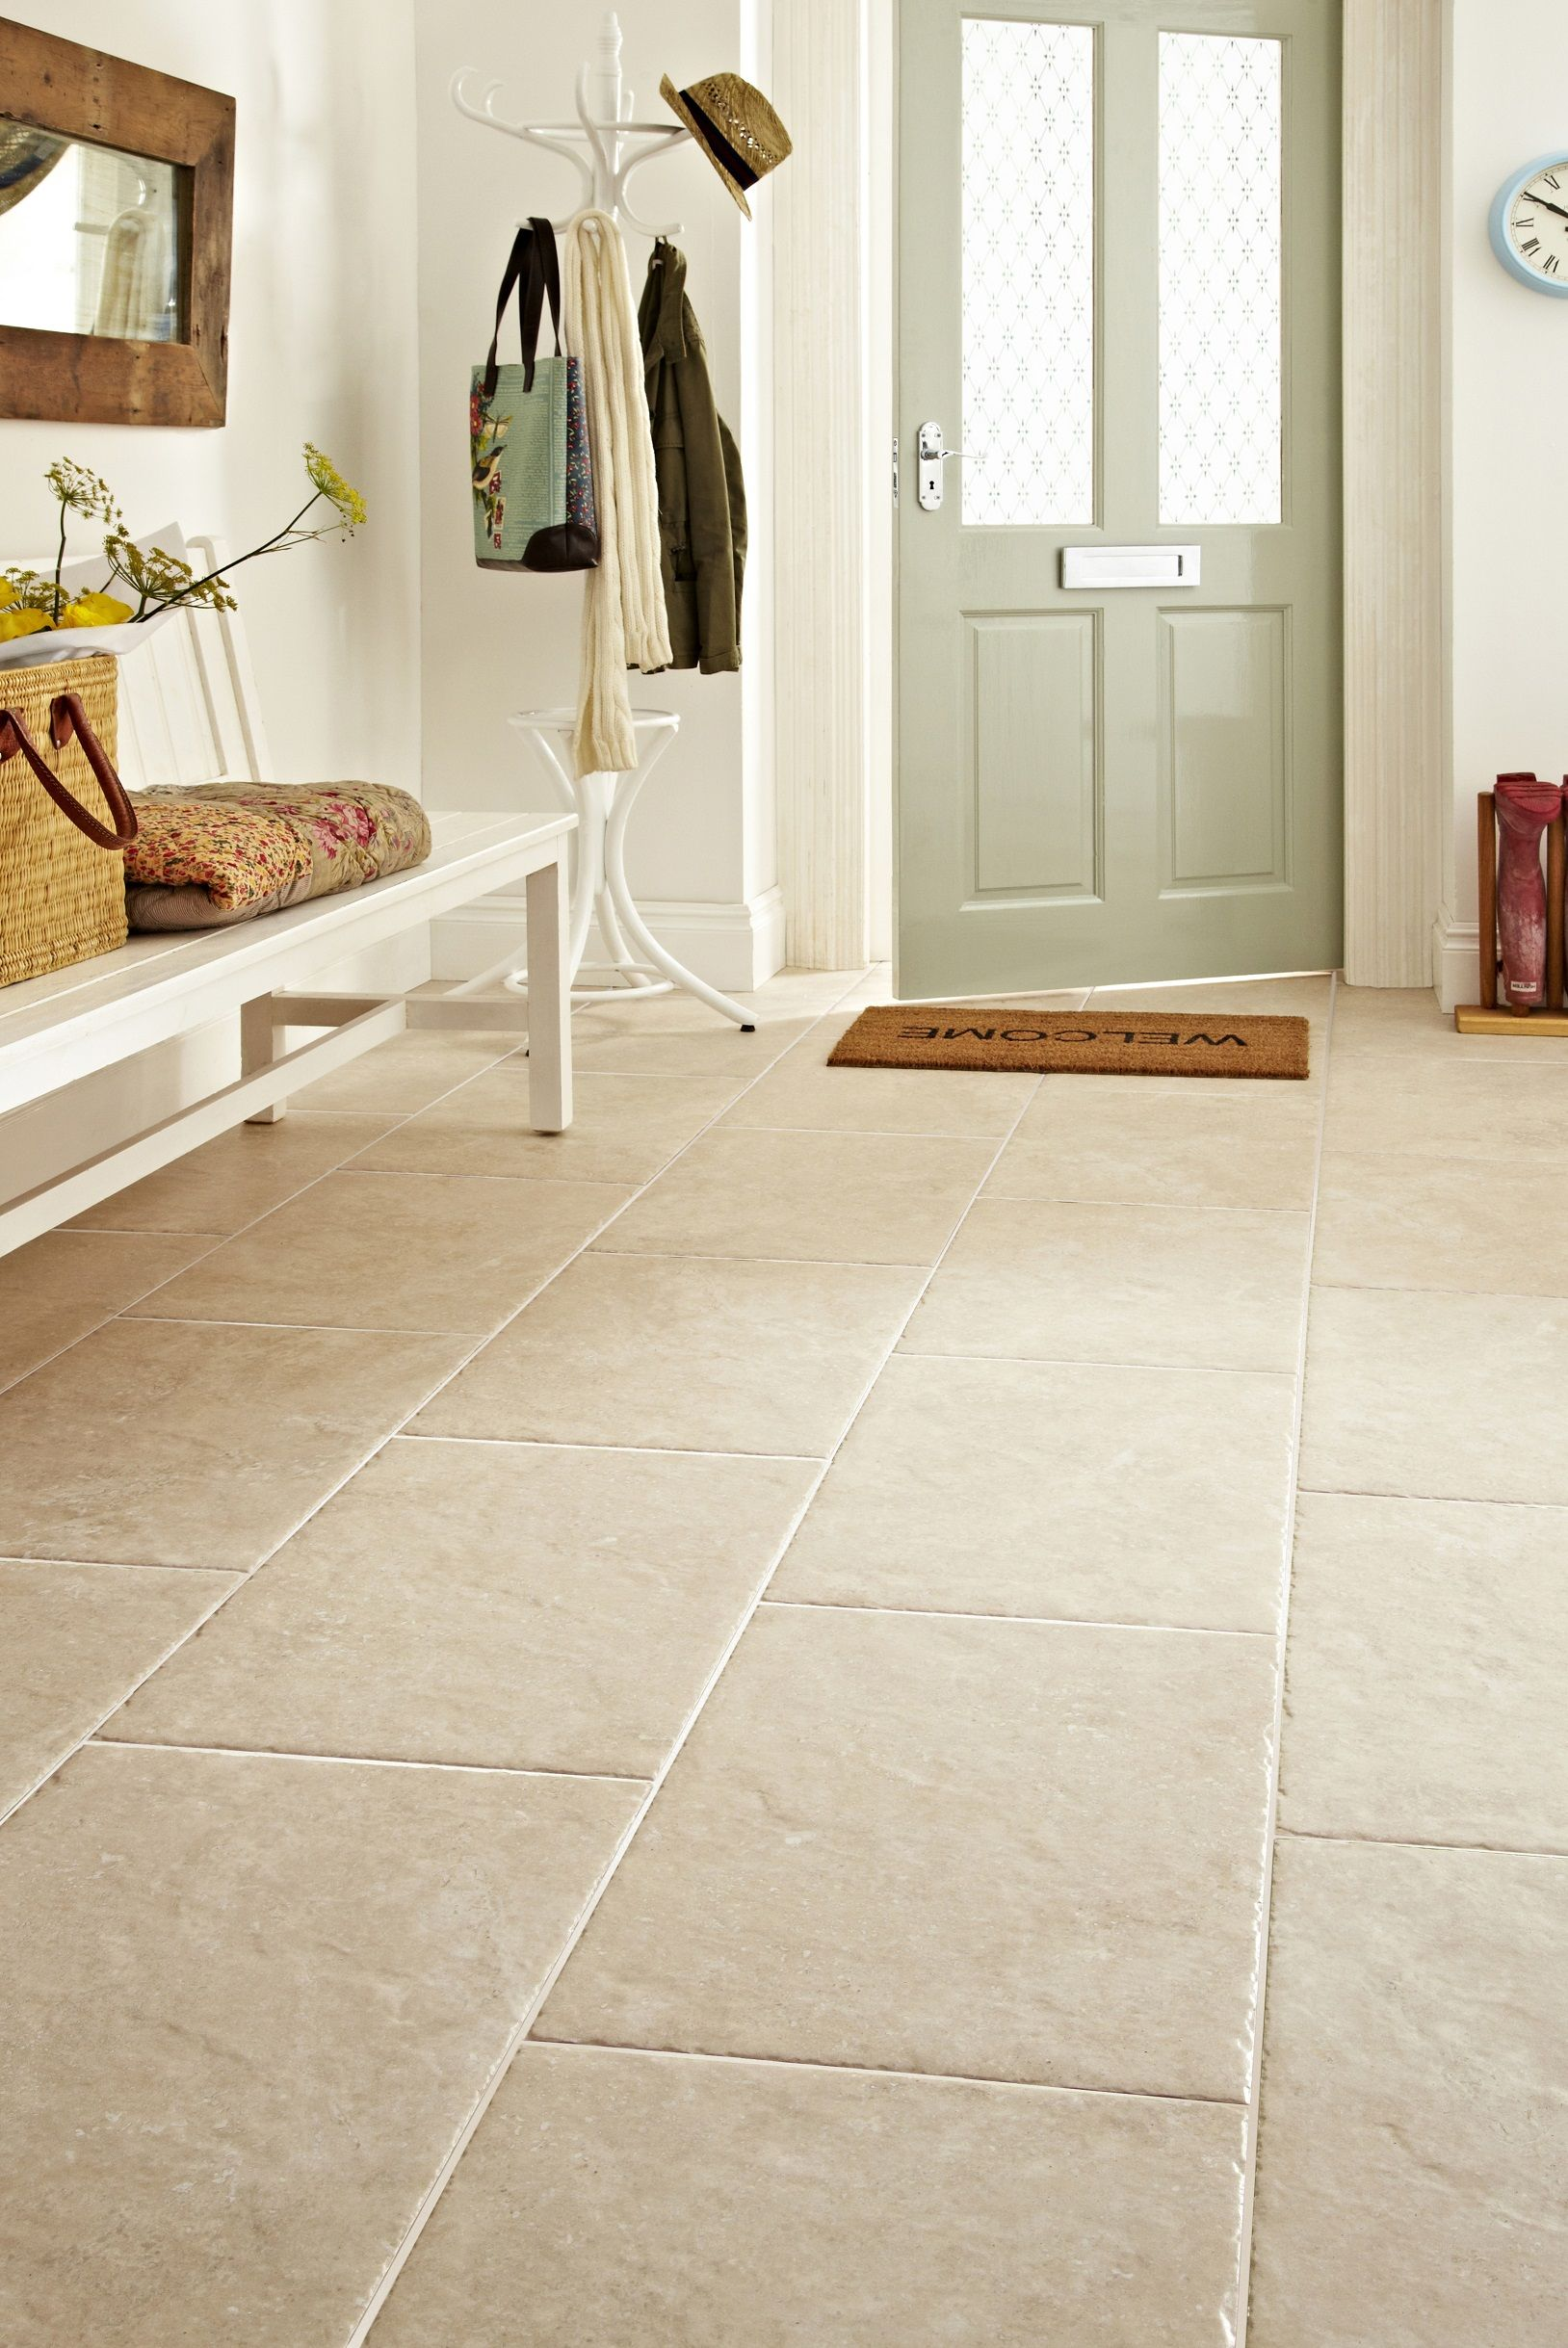 flooring ideas for kitchen Kitchen floor tiles at Topps Tiles Available in a range of colours materials and patterns Express 24 hour home delivery available free on all samples